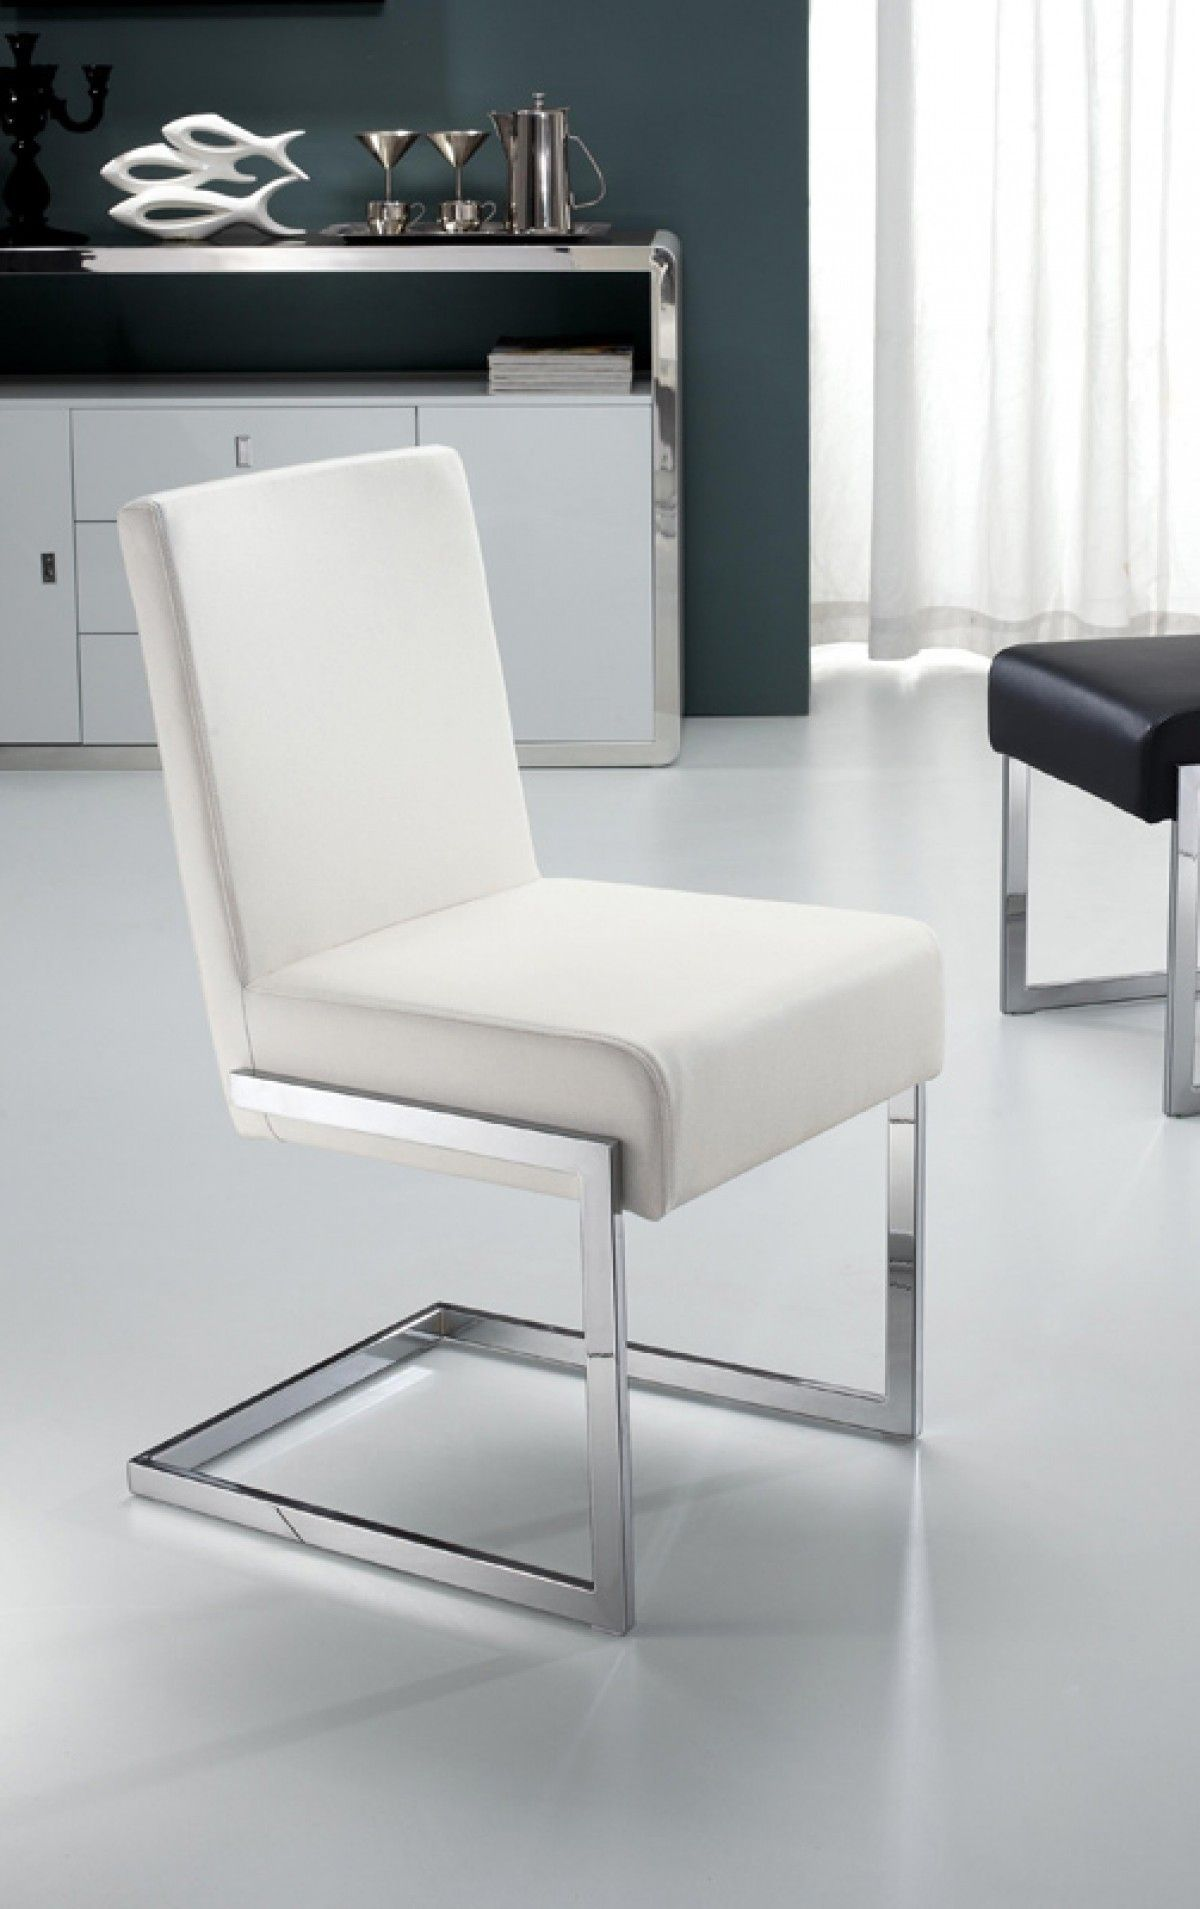 Shop allmodern for dining chairs for the best selection in modern design free shipping on all orders over 49